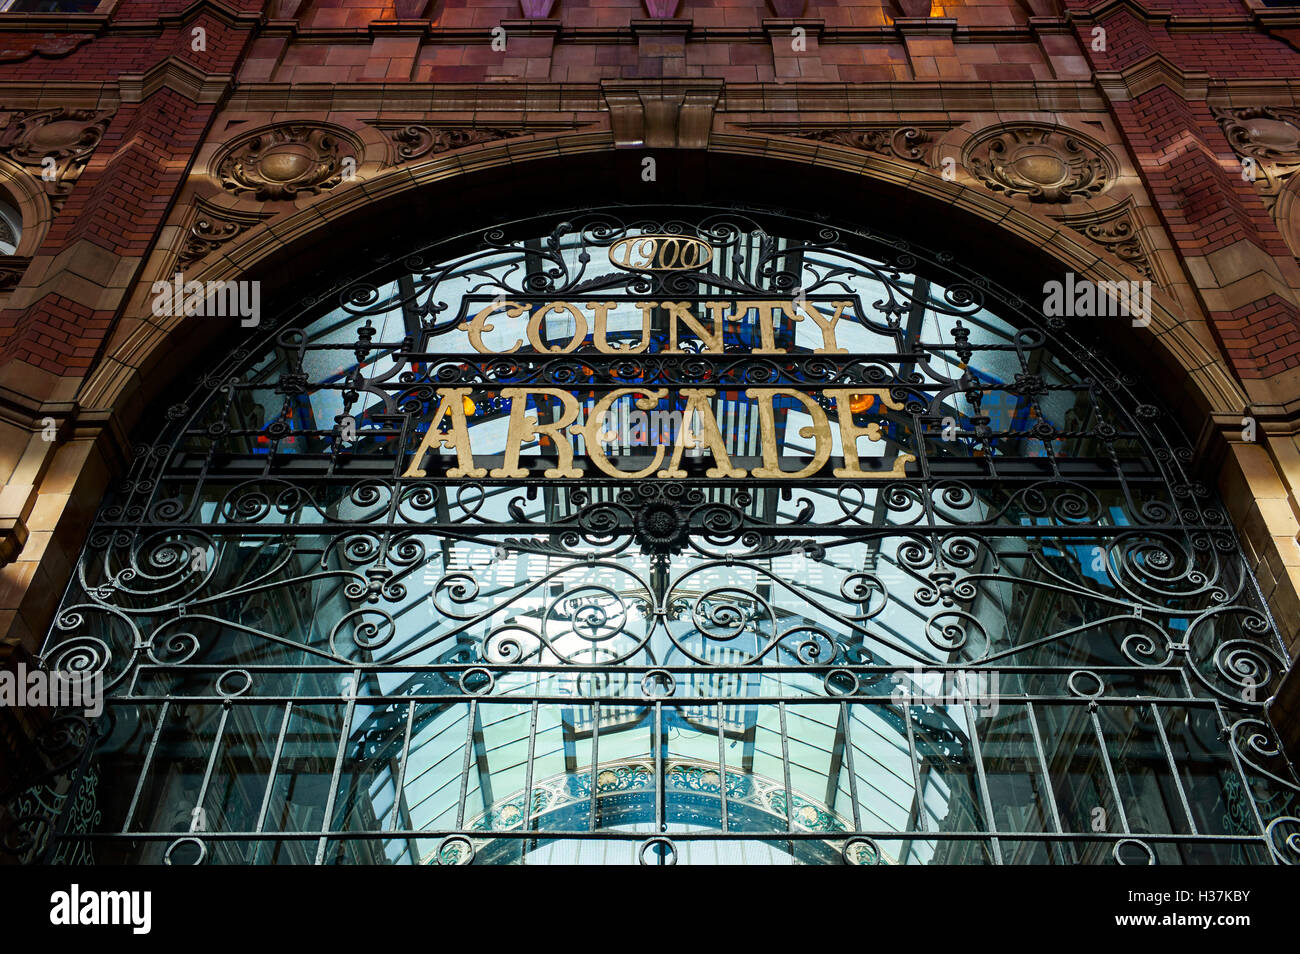 County Arcade in Leeds - Stock Image